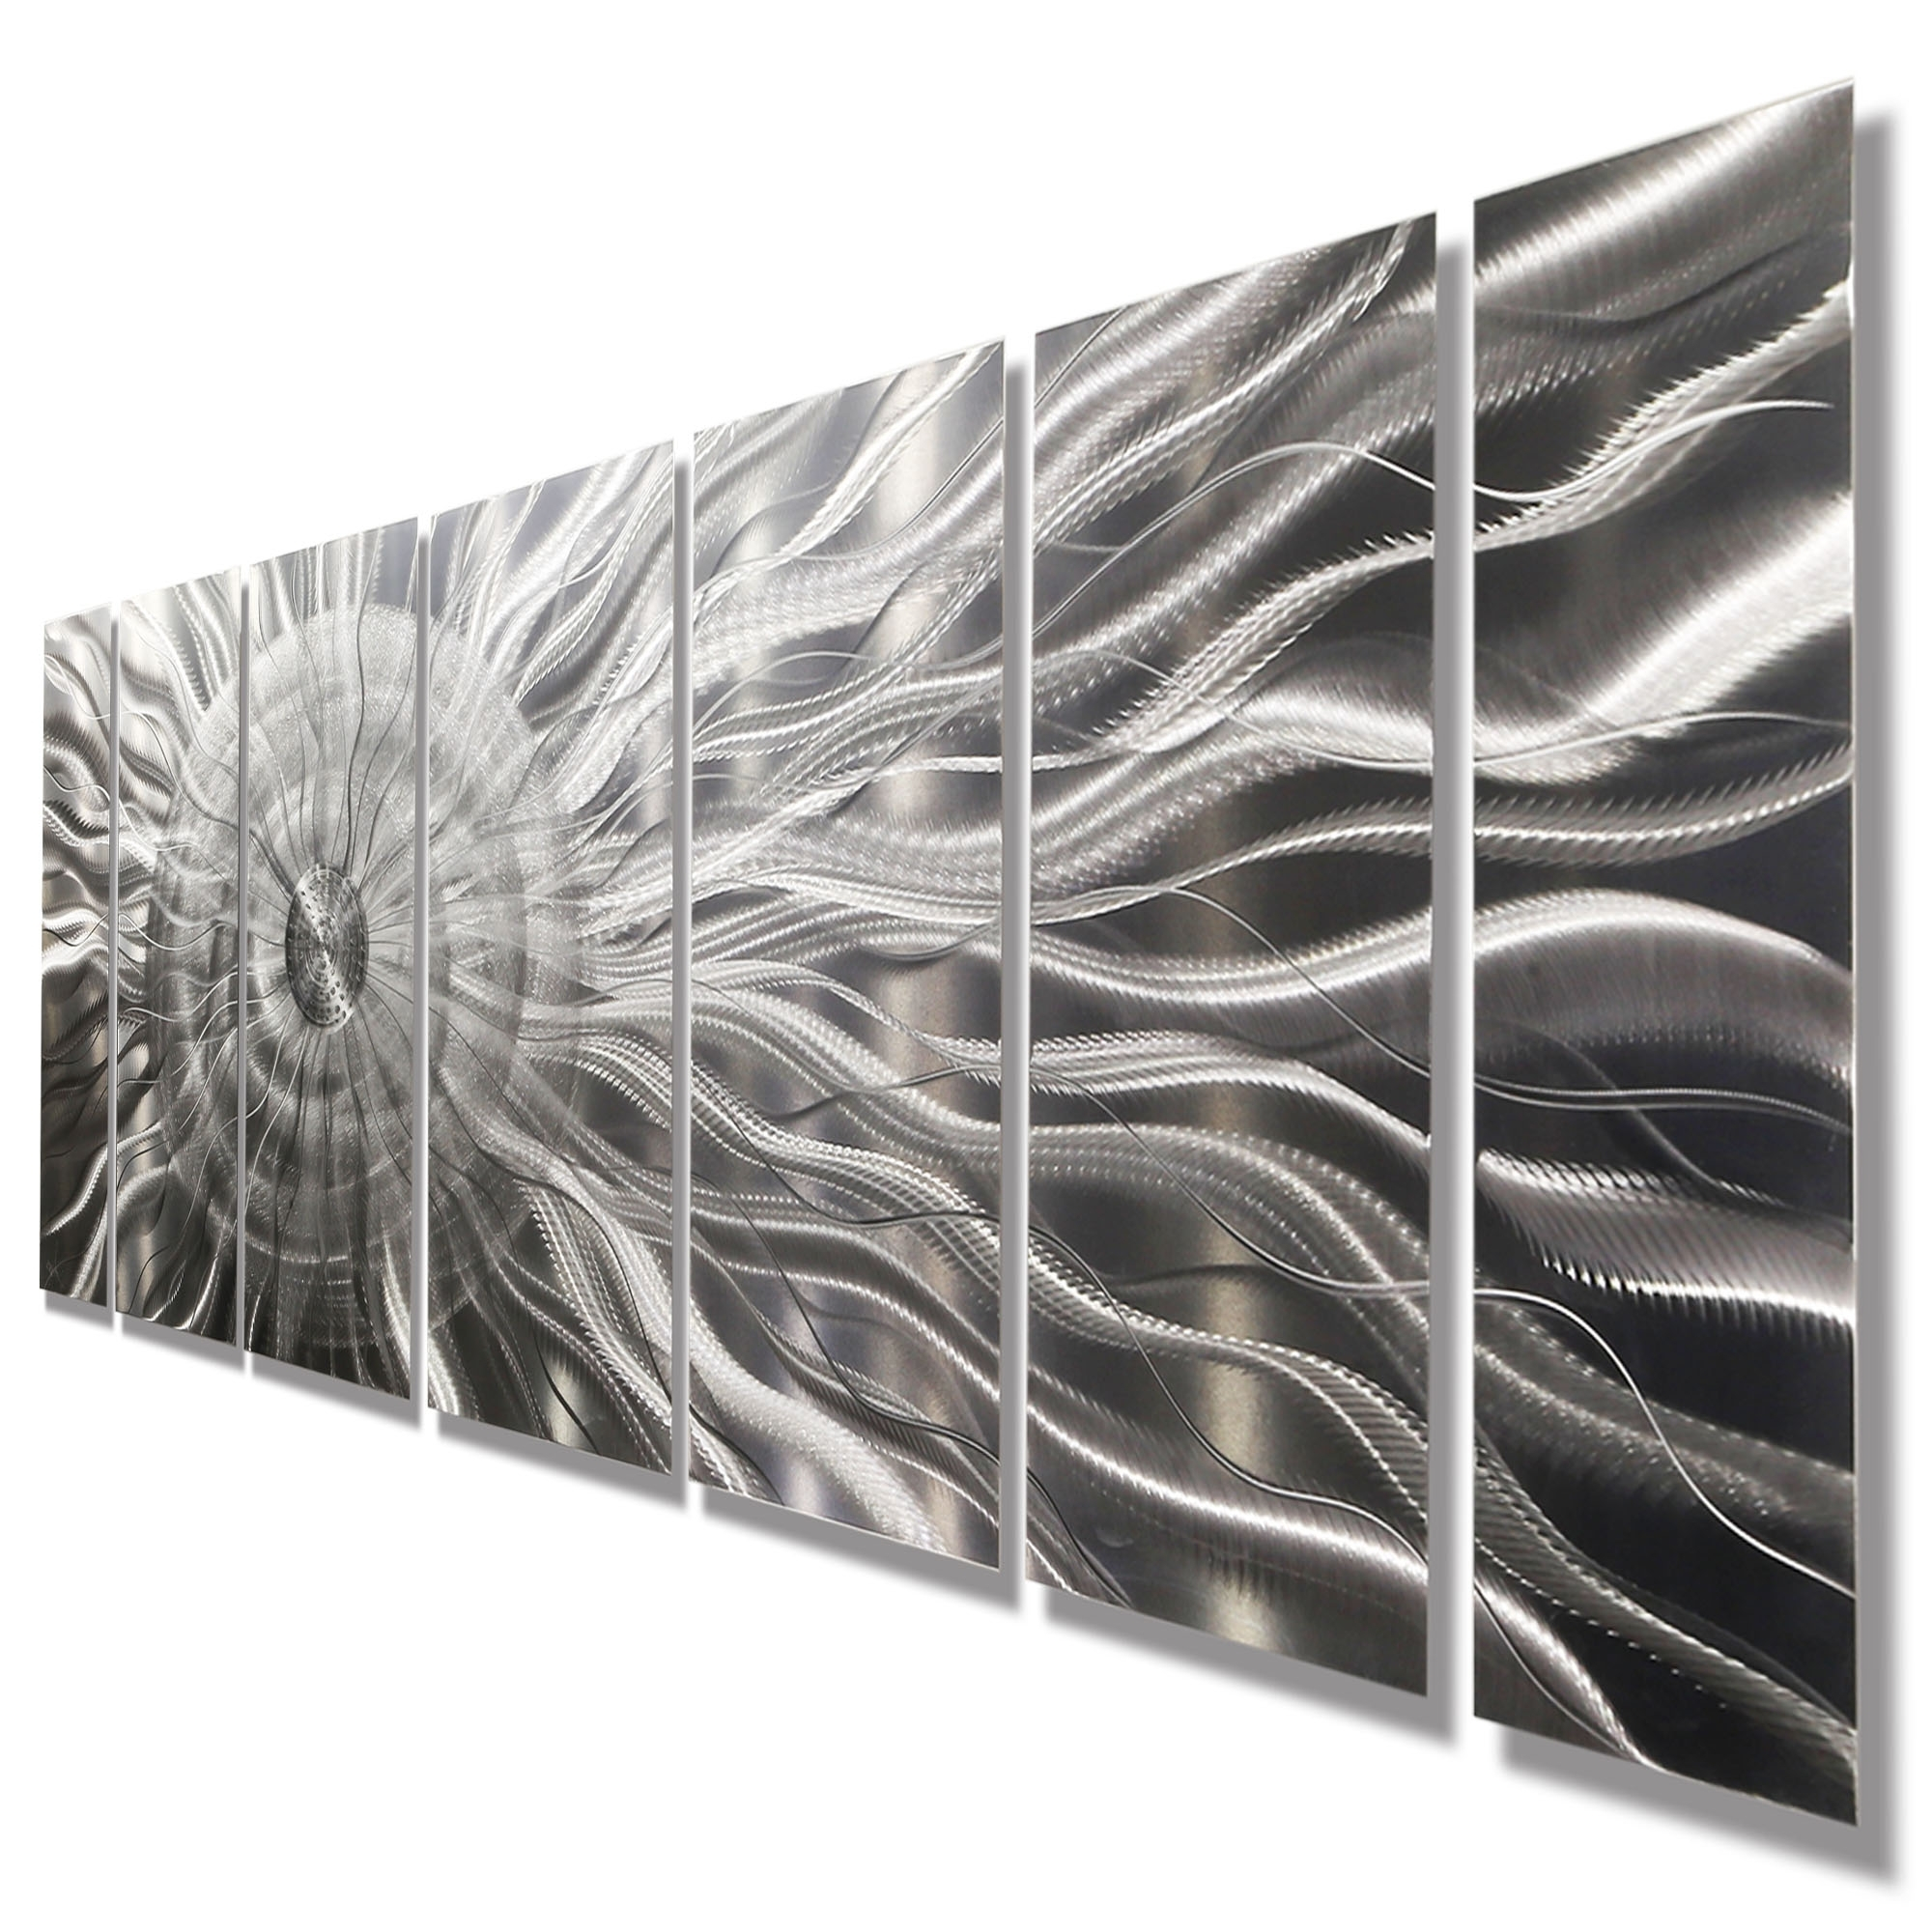 Photon Xl – Extra Large Modern Abstract Silver Corporate Metal Inside Latest 3D Wall Art Etsy (View 11 of 15)